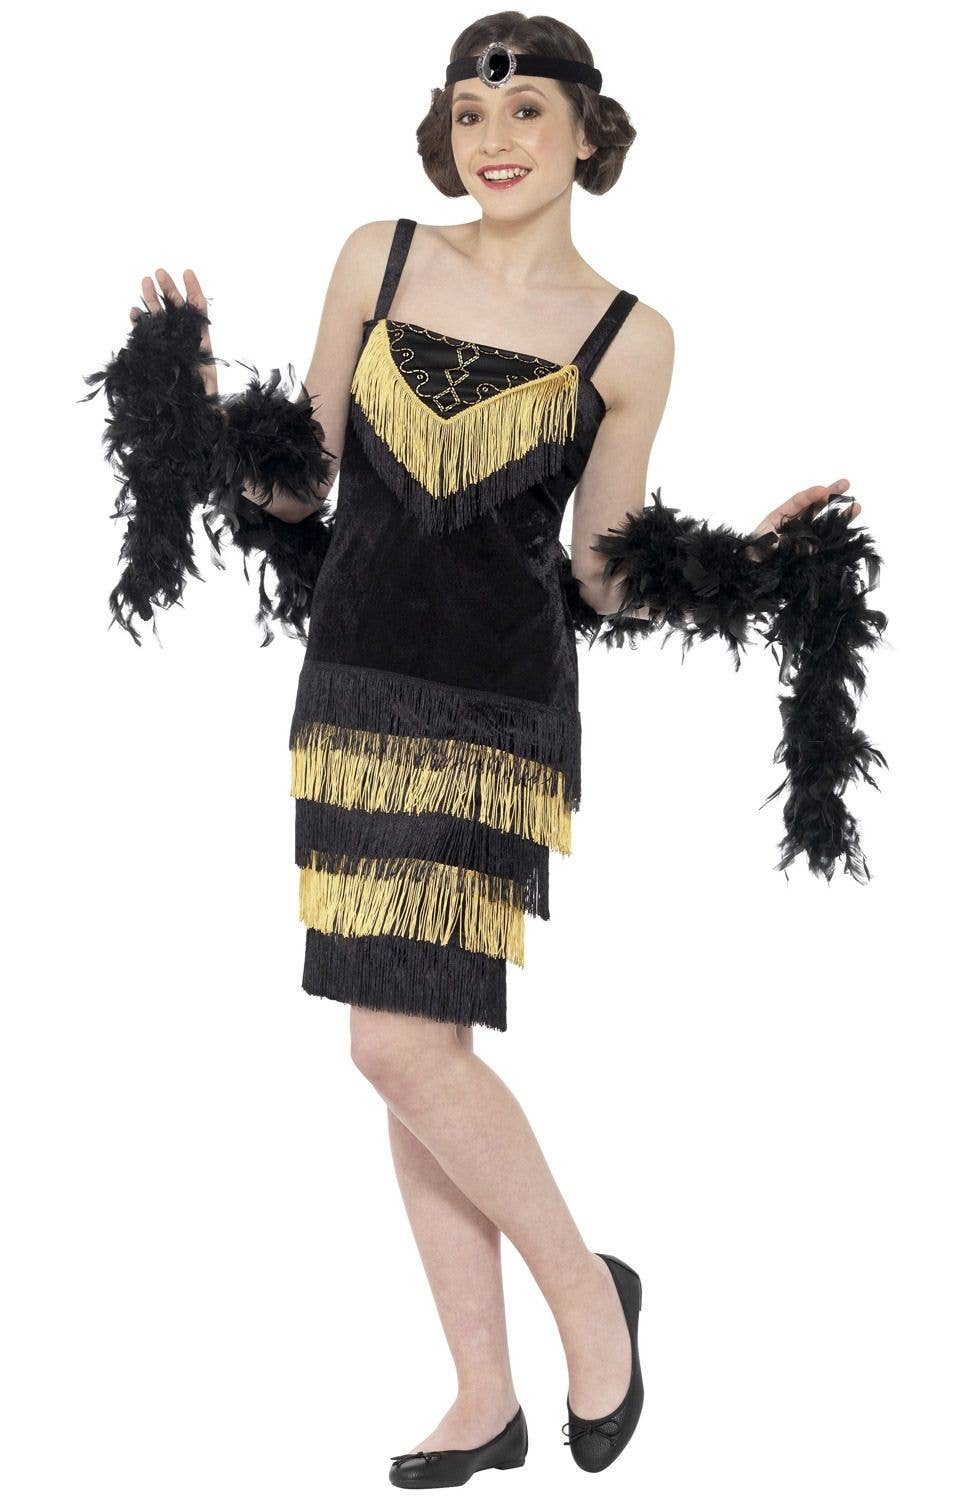 b64f5e7ce7 Gatsby Flapper Girl Black and Gold 1920's Teen Costume